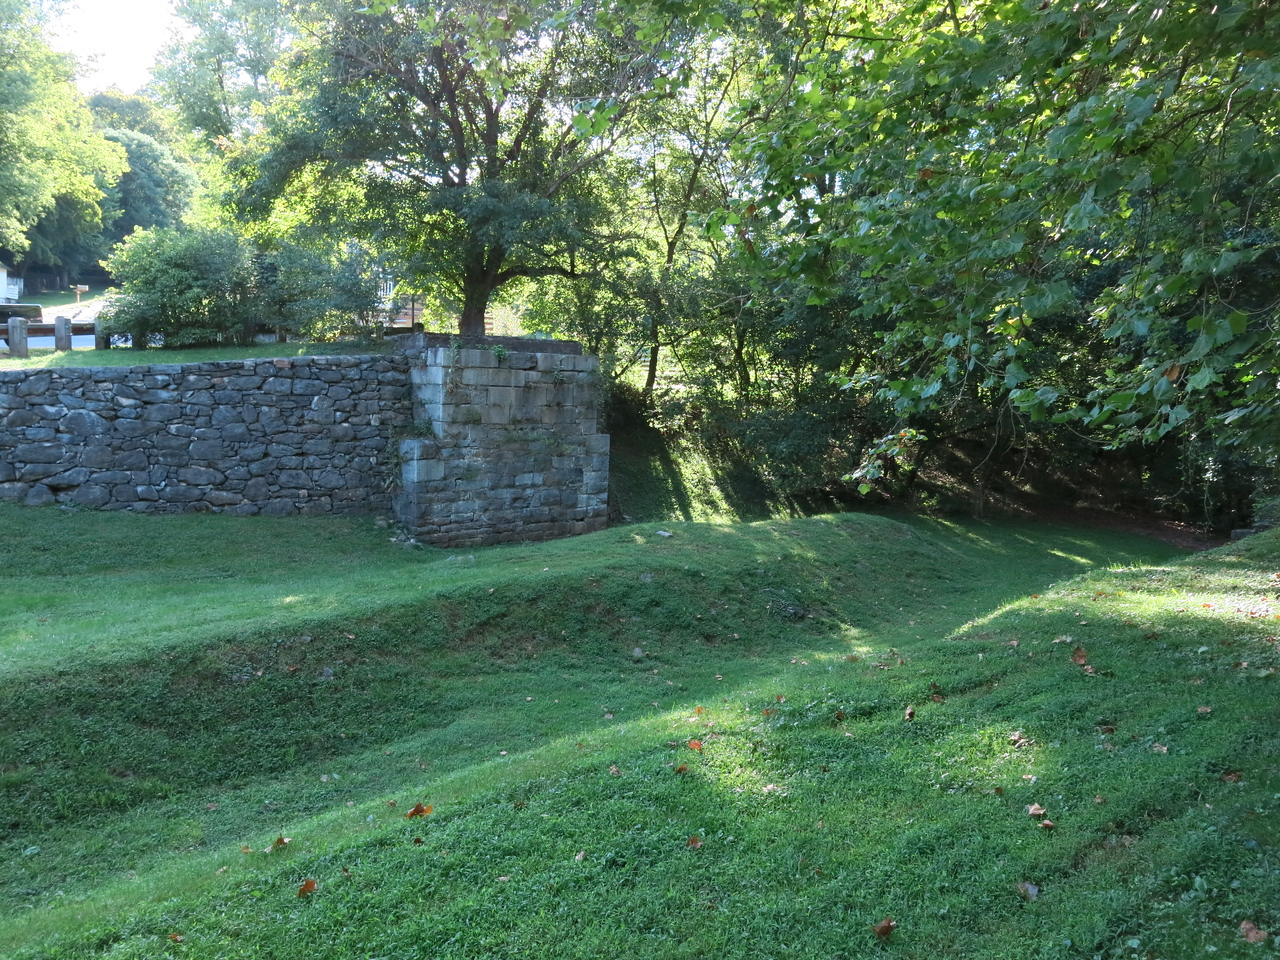 An abutment from a bygone bridge downstream from Lock 38